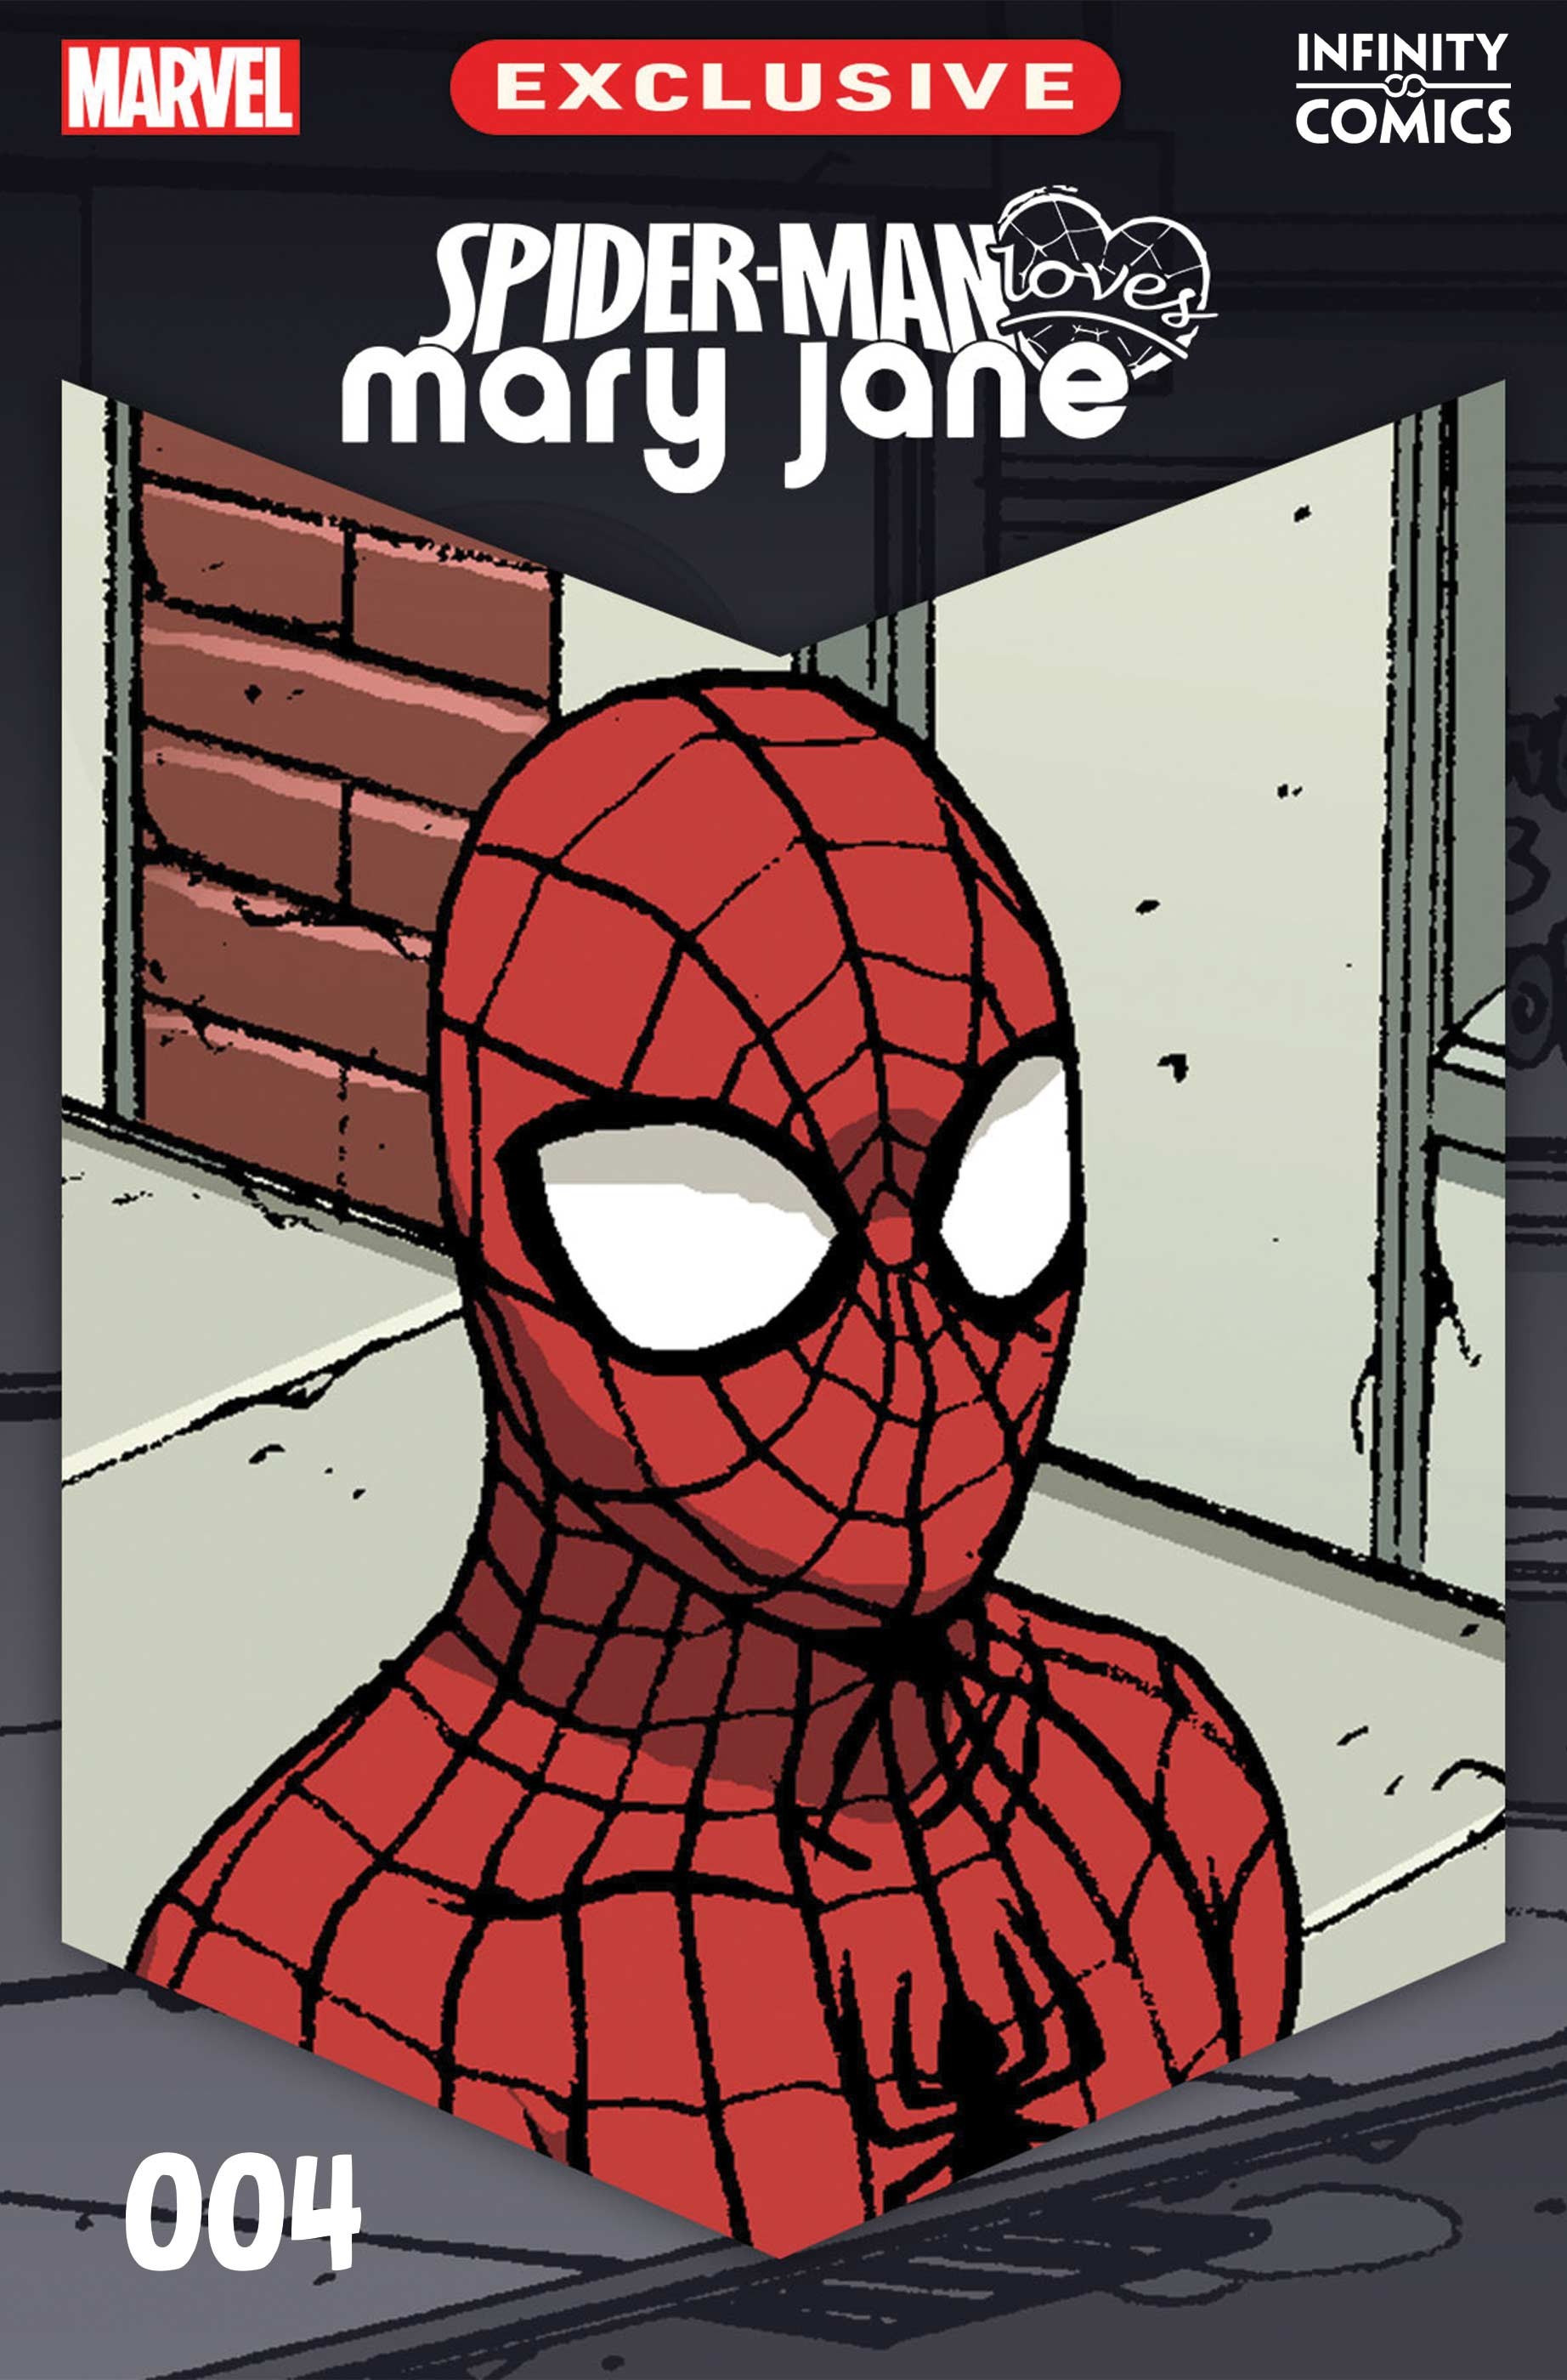 Spider-Man Loves Mary Jane Infinity Comic (2021) #4